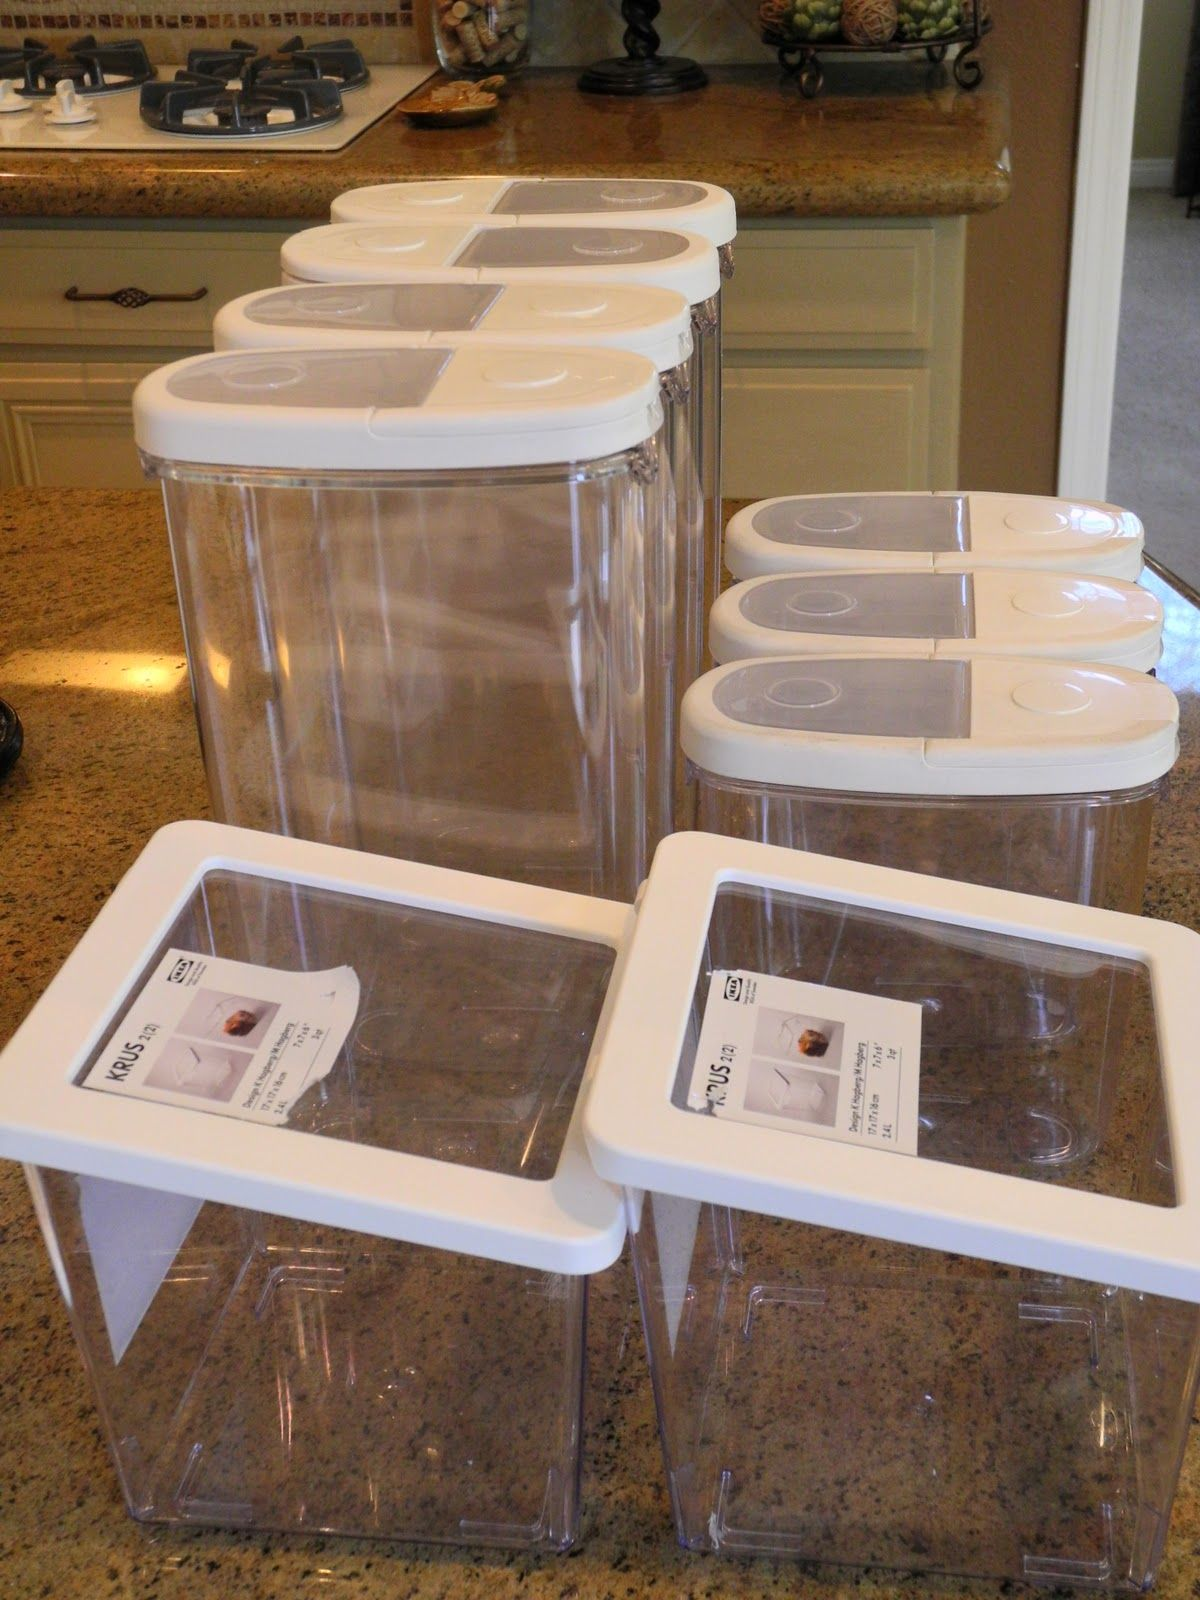 kitchen storage organisers bins for organizing pantry bpa free ikea containers for 3164